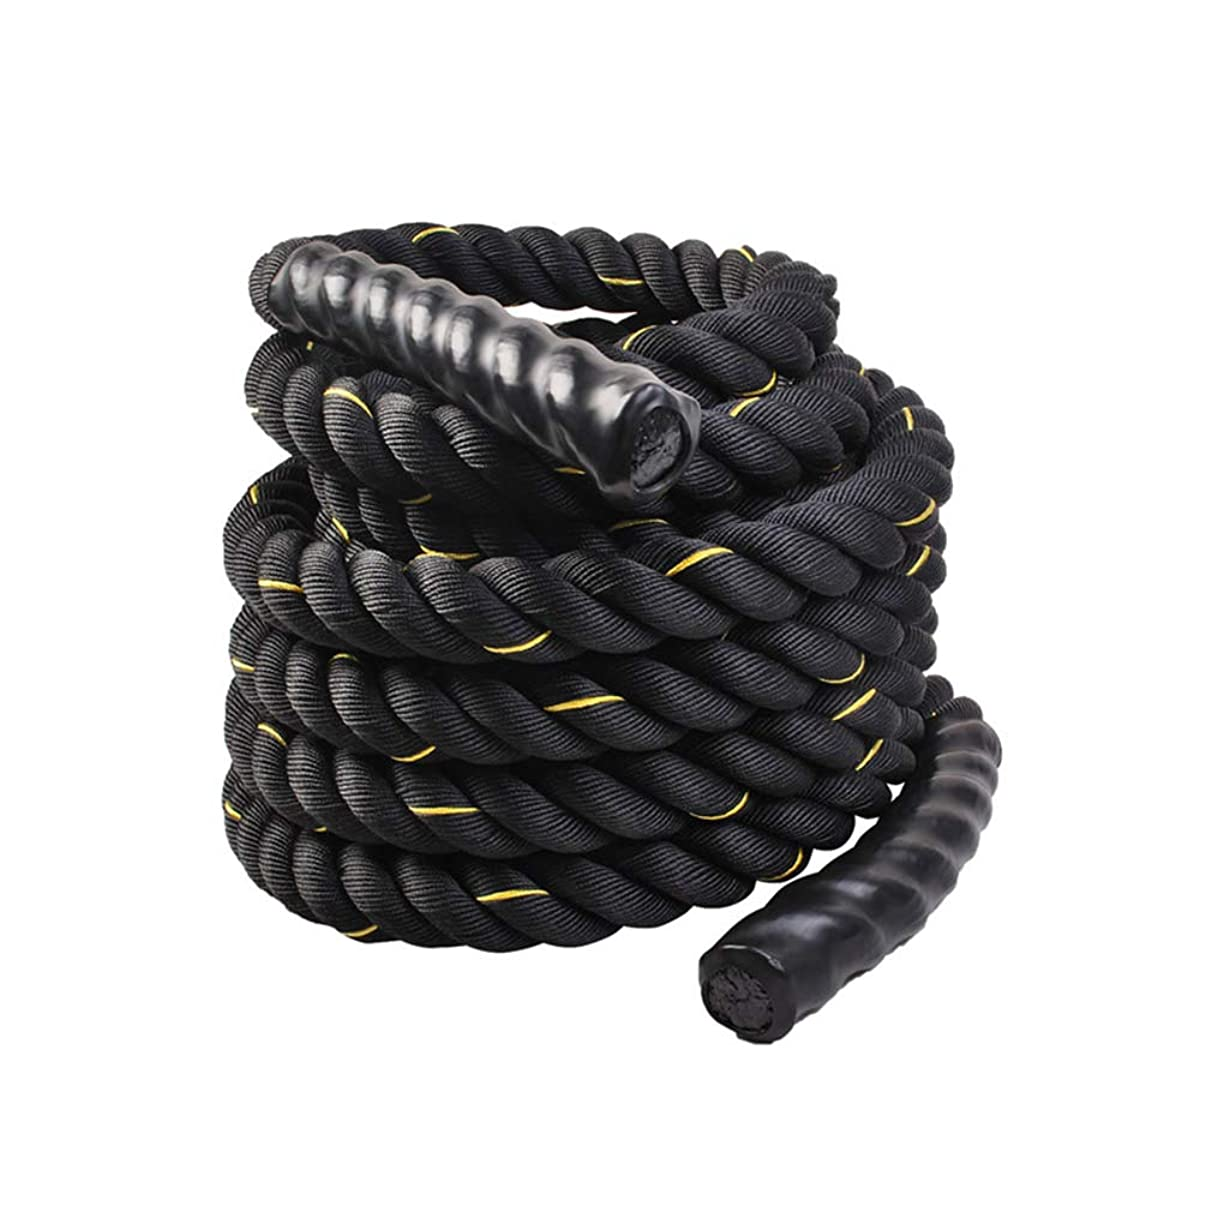 UFC Fitness Training Rope Polyester Fighting Rope Fitness Thick Rope Muscle Big Reins Power Rope Battle Rope 9m, 12m, 15m